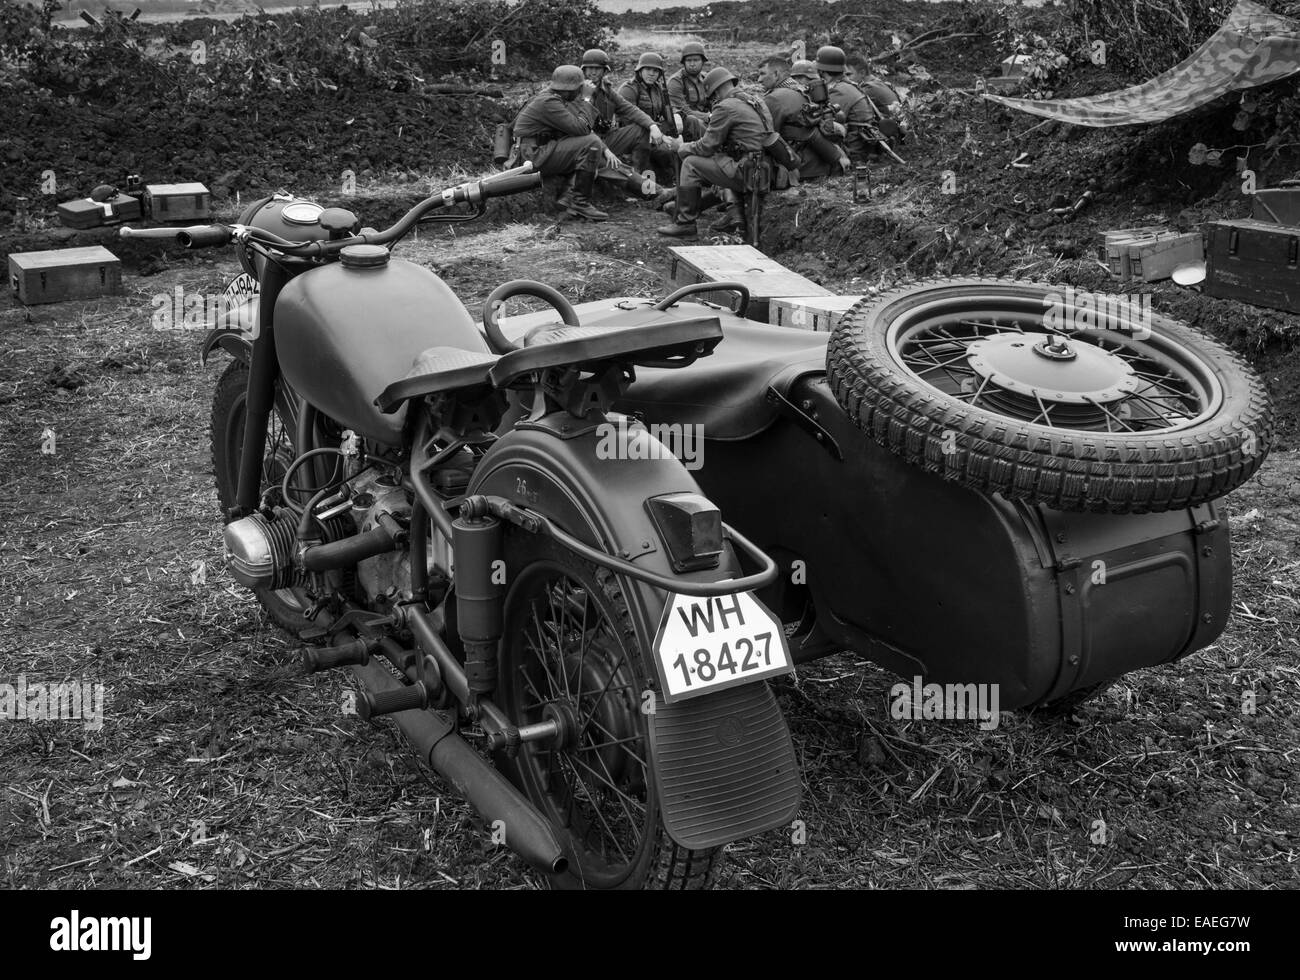 Ural Black And White Stock Photos Images Alamy Engine Diagram Imz M66 1970s Russian Made Motorcycle Sidecar Painted To Represent A Ww2 Wartime